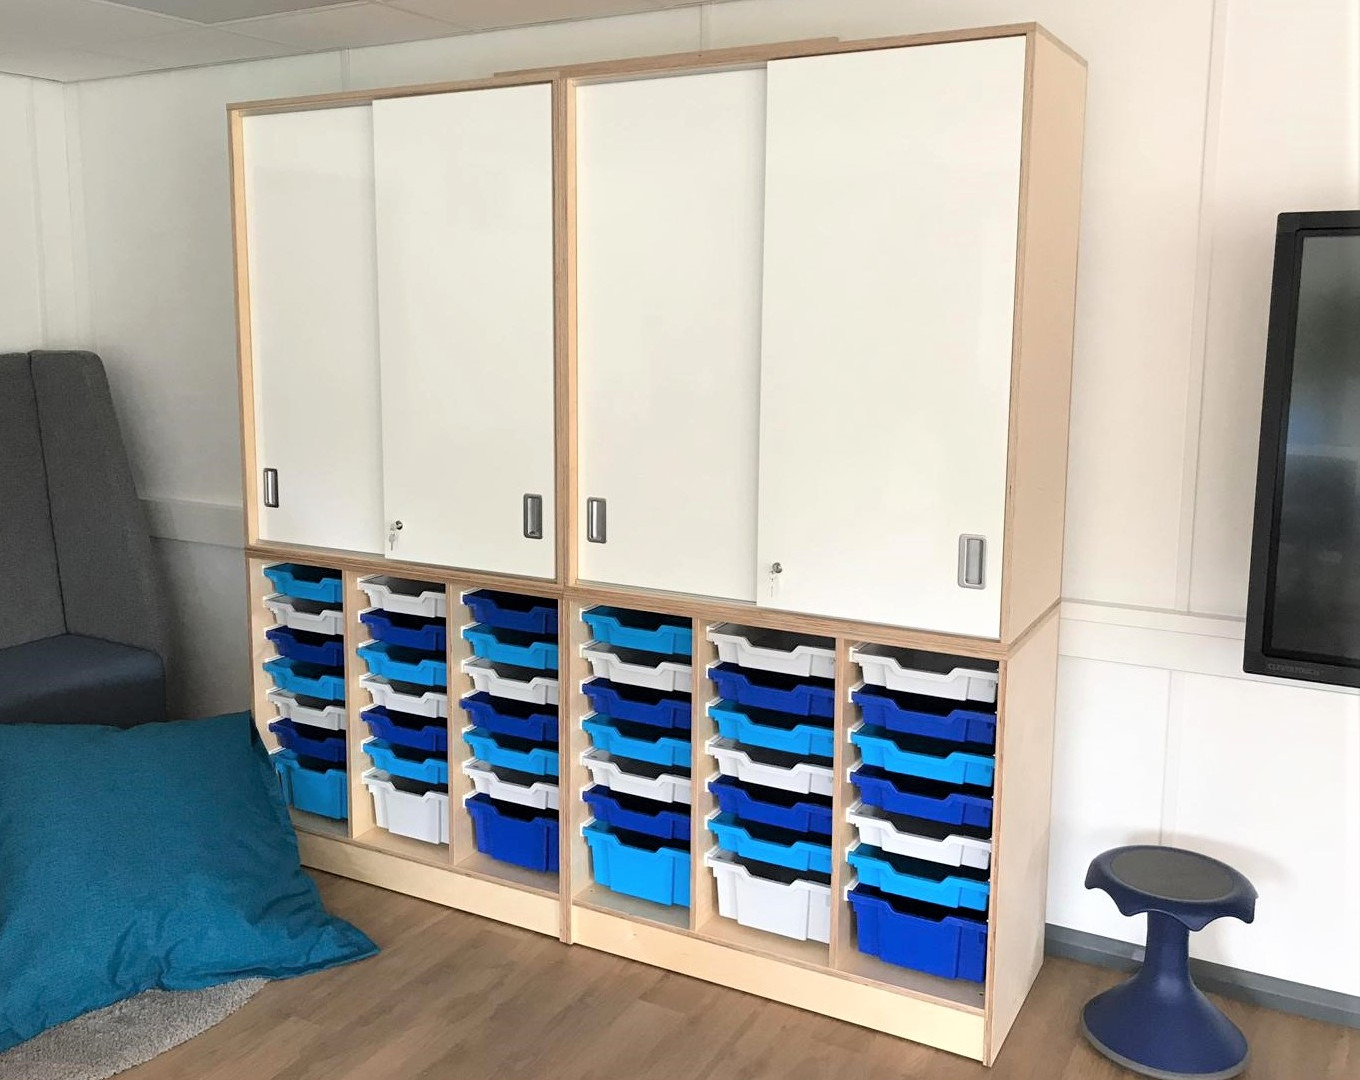 Classroom storage with whiteboard doors.